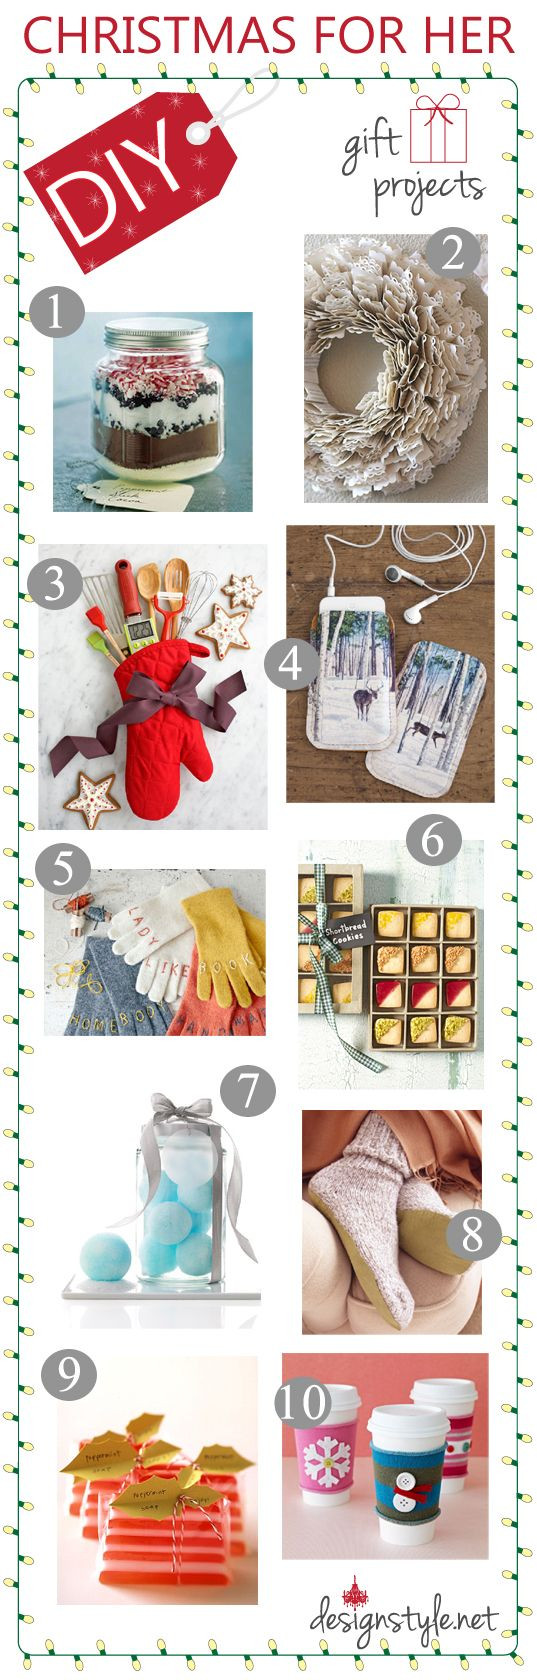 DIY Christmas Gifts For Her  DIY Christmas Gift Ideas For Her & Him